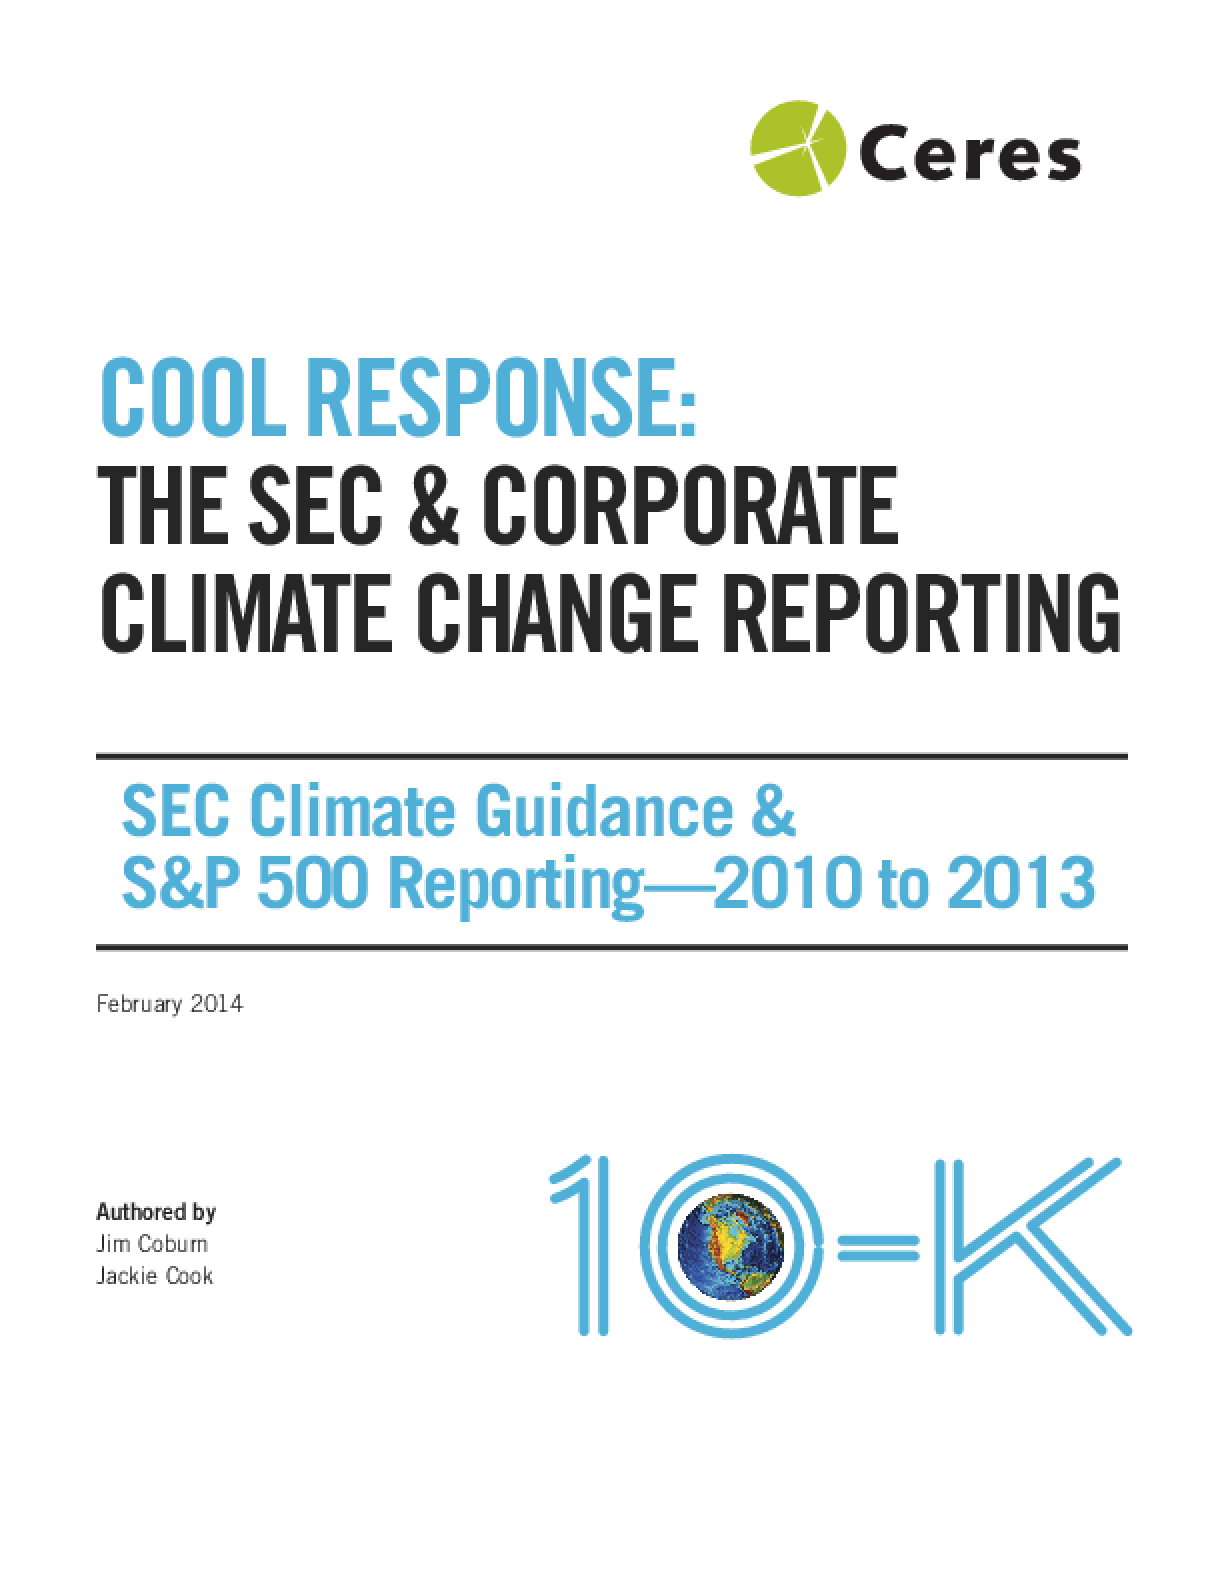 Cool Response: The SEC & Corporate Climate Change Reporting